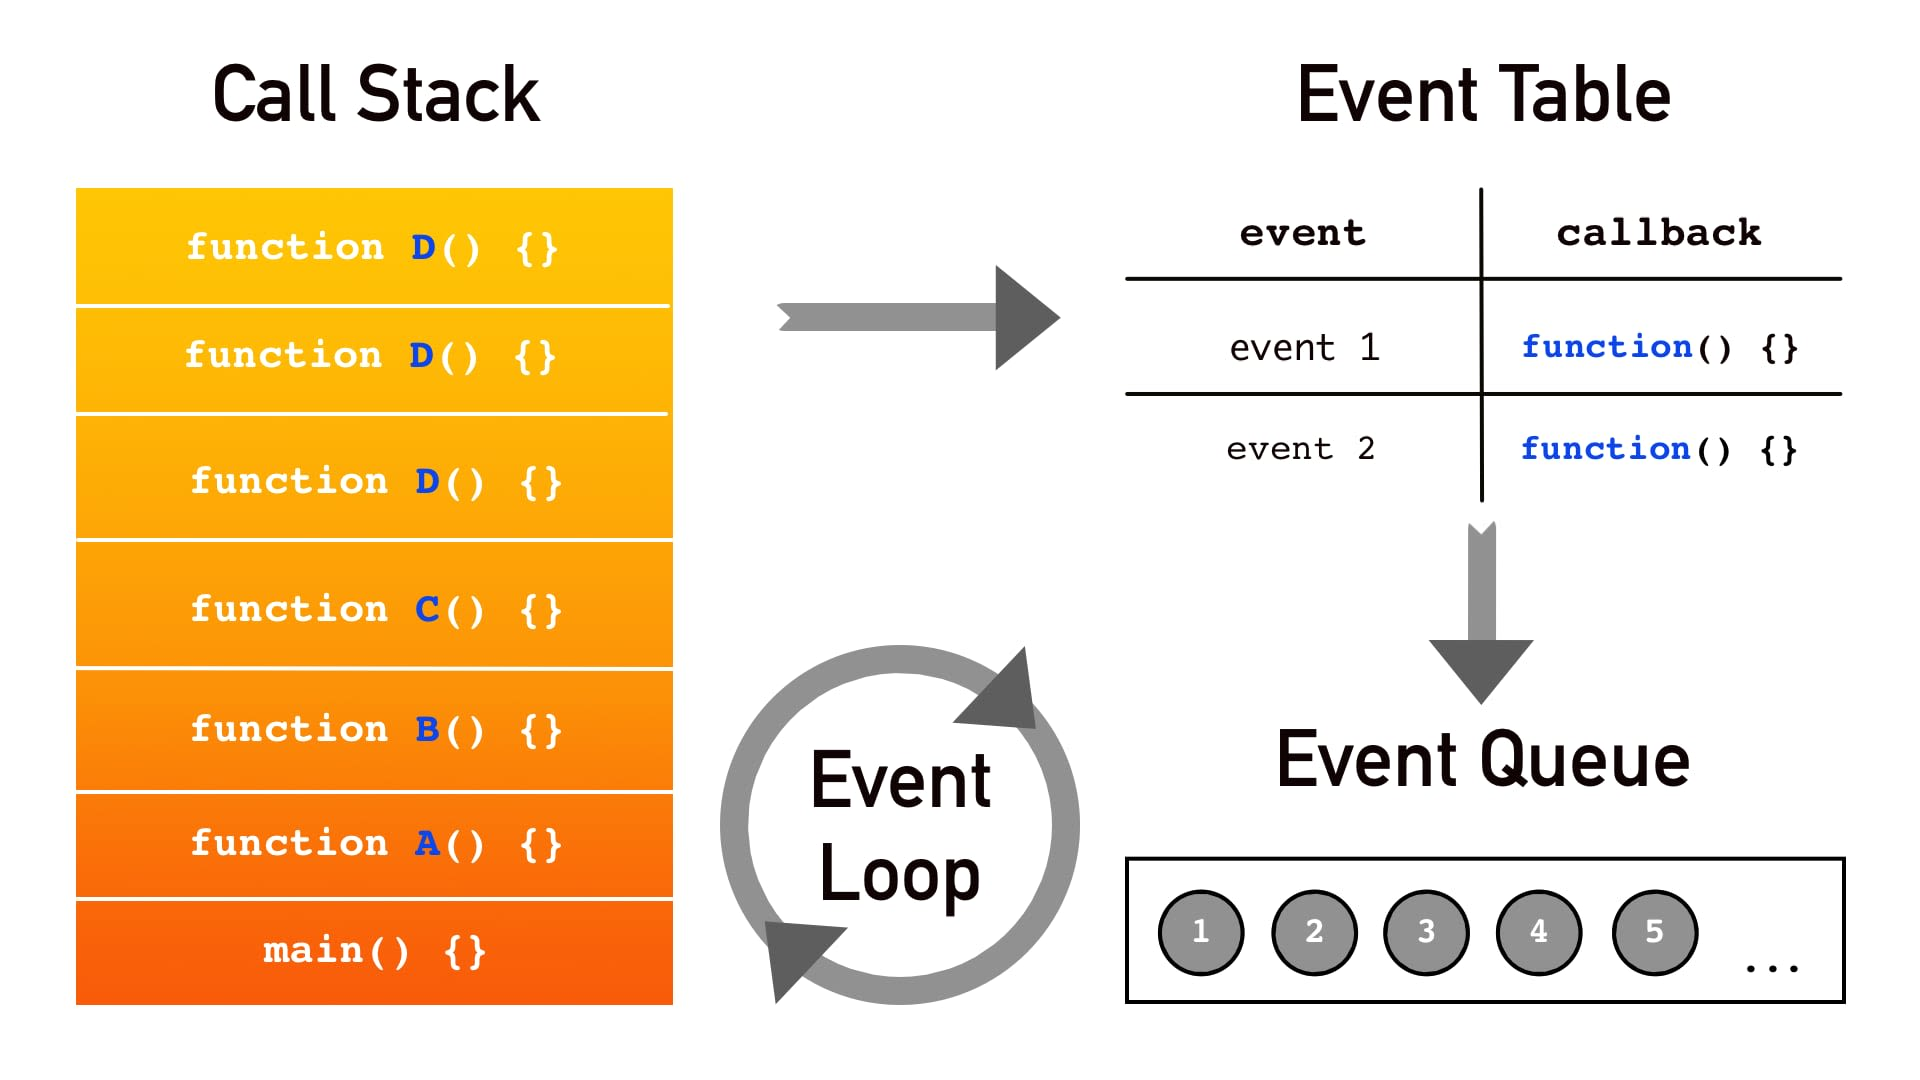 Event Loop is a constantly running process that checks if the Call Stack is empty. If it's not empty –  Event Loop executes the top task in the Call Stack, and if it is empty – looks into Event Queue and moves callbacks from there to the Call Stack. Meanwhile, the Event Table pushes new tasks to the Event Queue, when events it is tracking are happening.